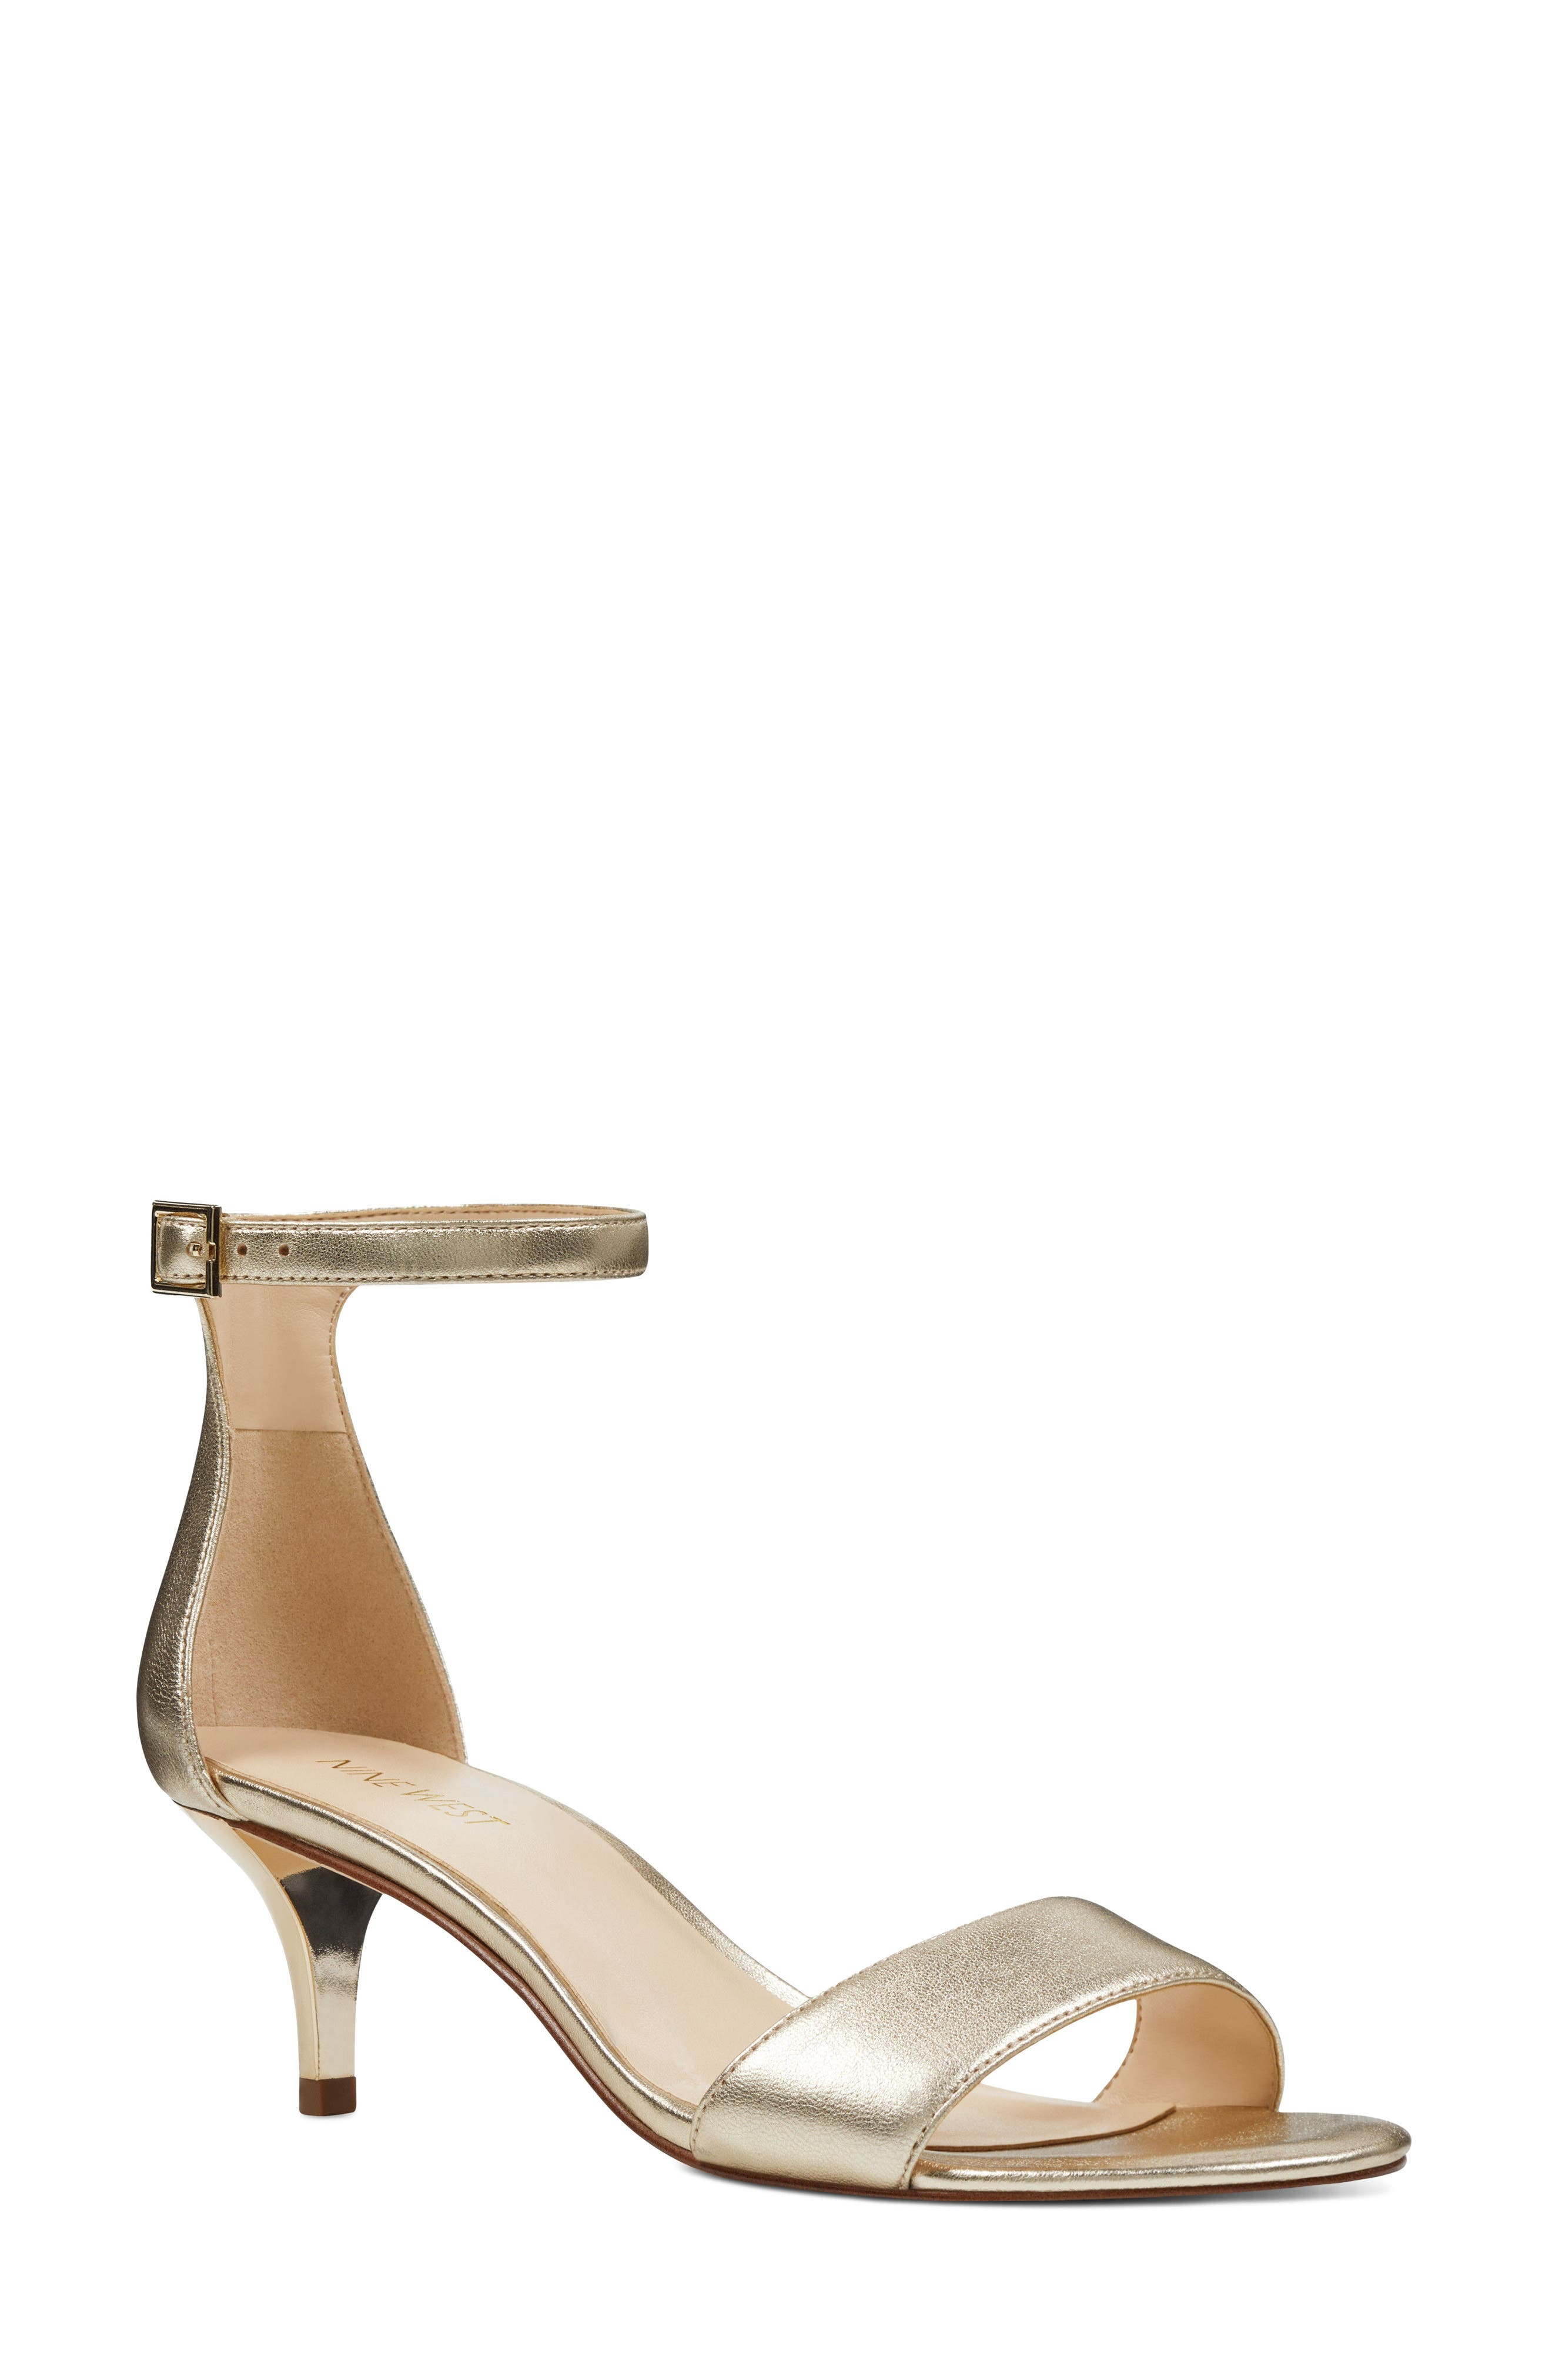 'Leisa' Ankle Strap Sandal,                             Main thumbnail 1, color,                             711